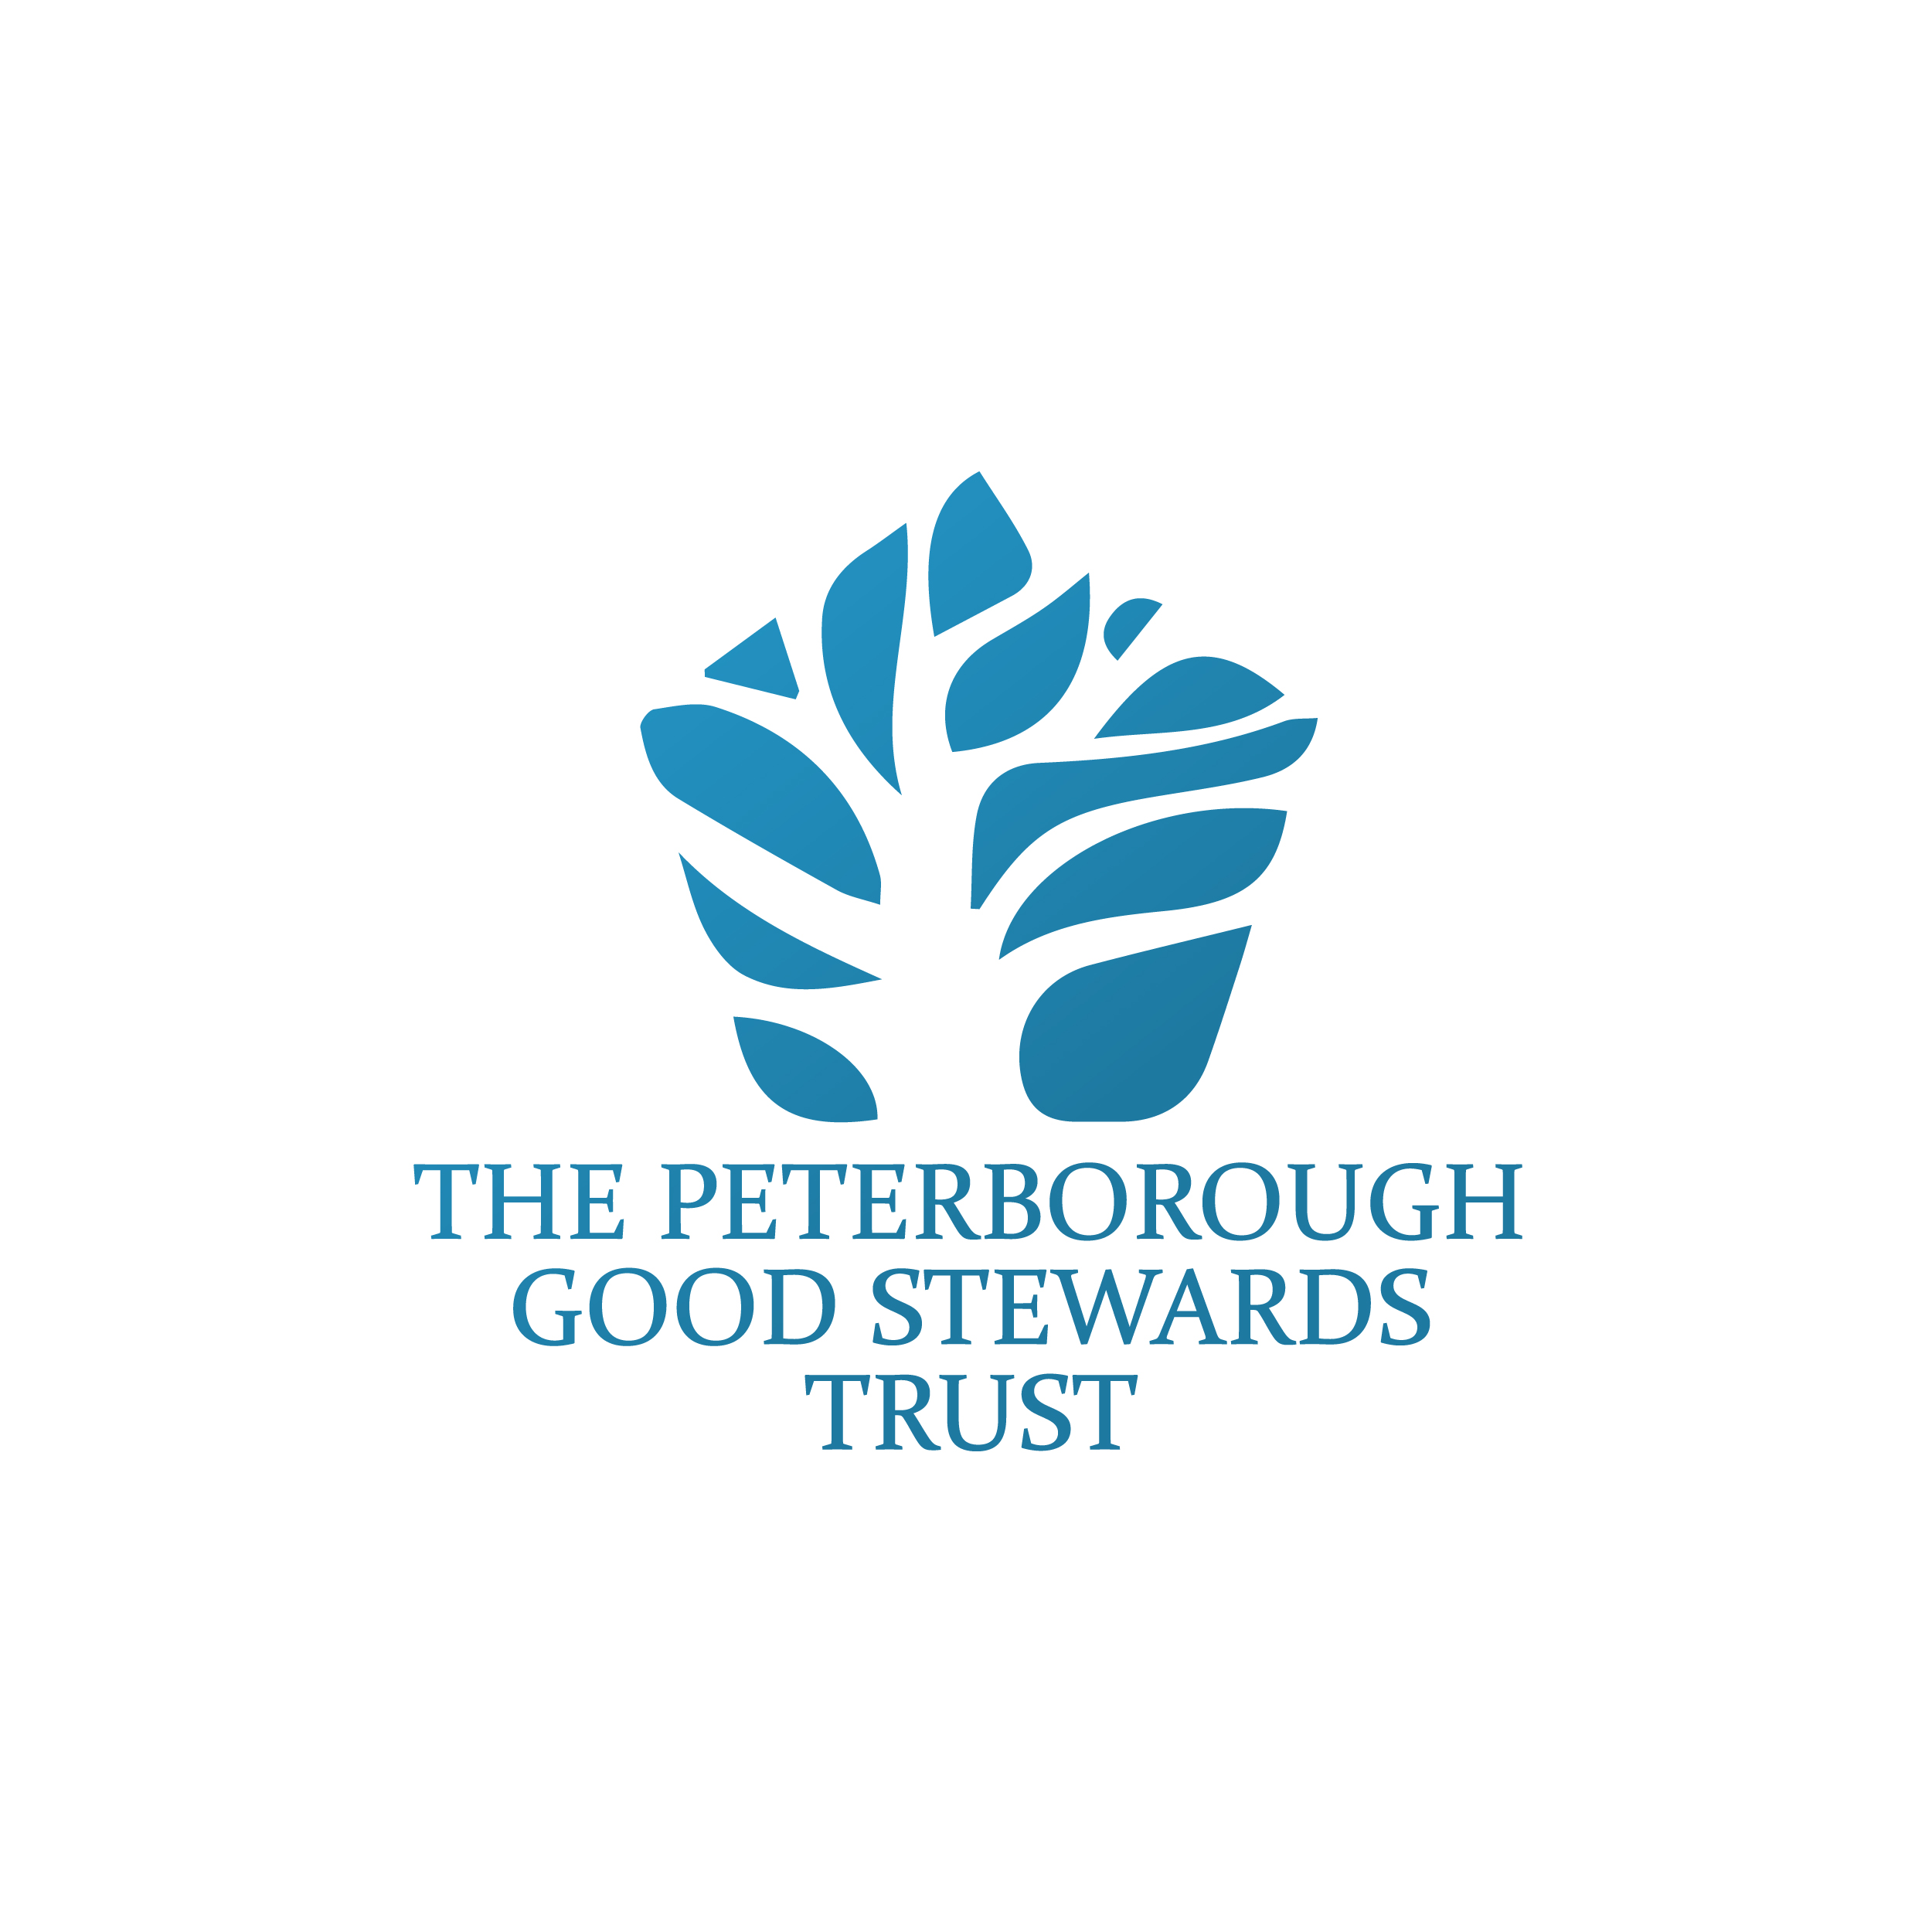 The Peterborough Good Stewards Trust